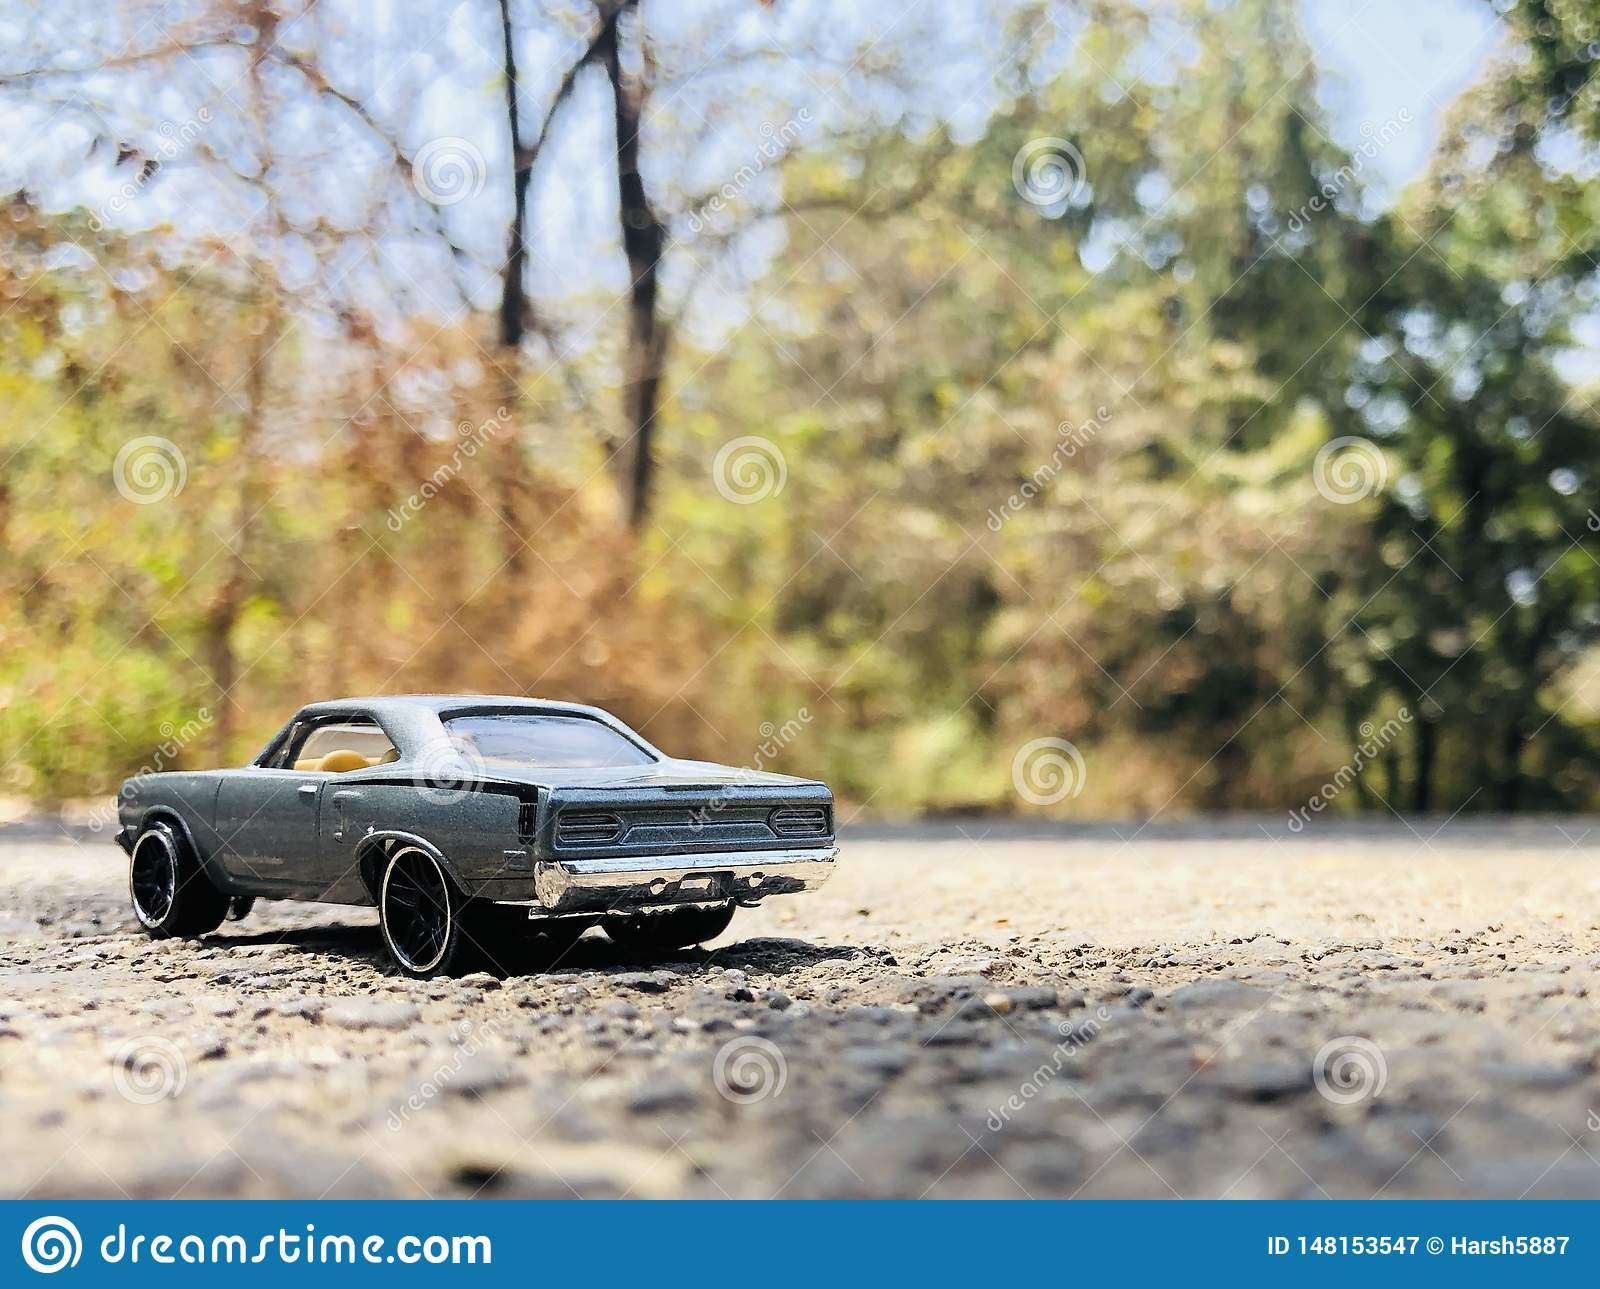 70 PLYMOUTH ROAD RUNNER Fast & Furious